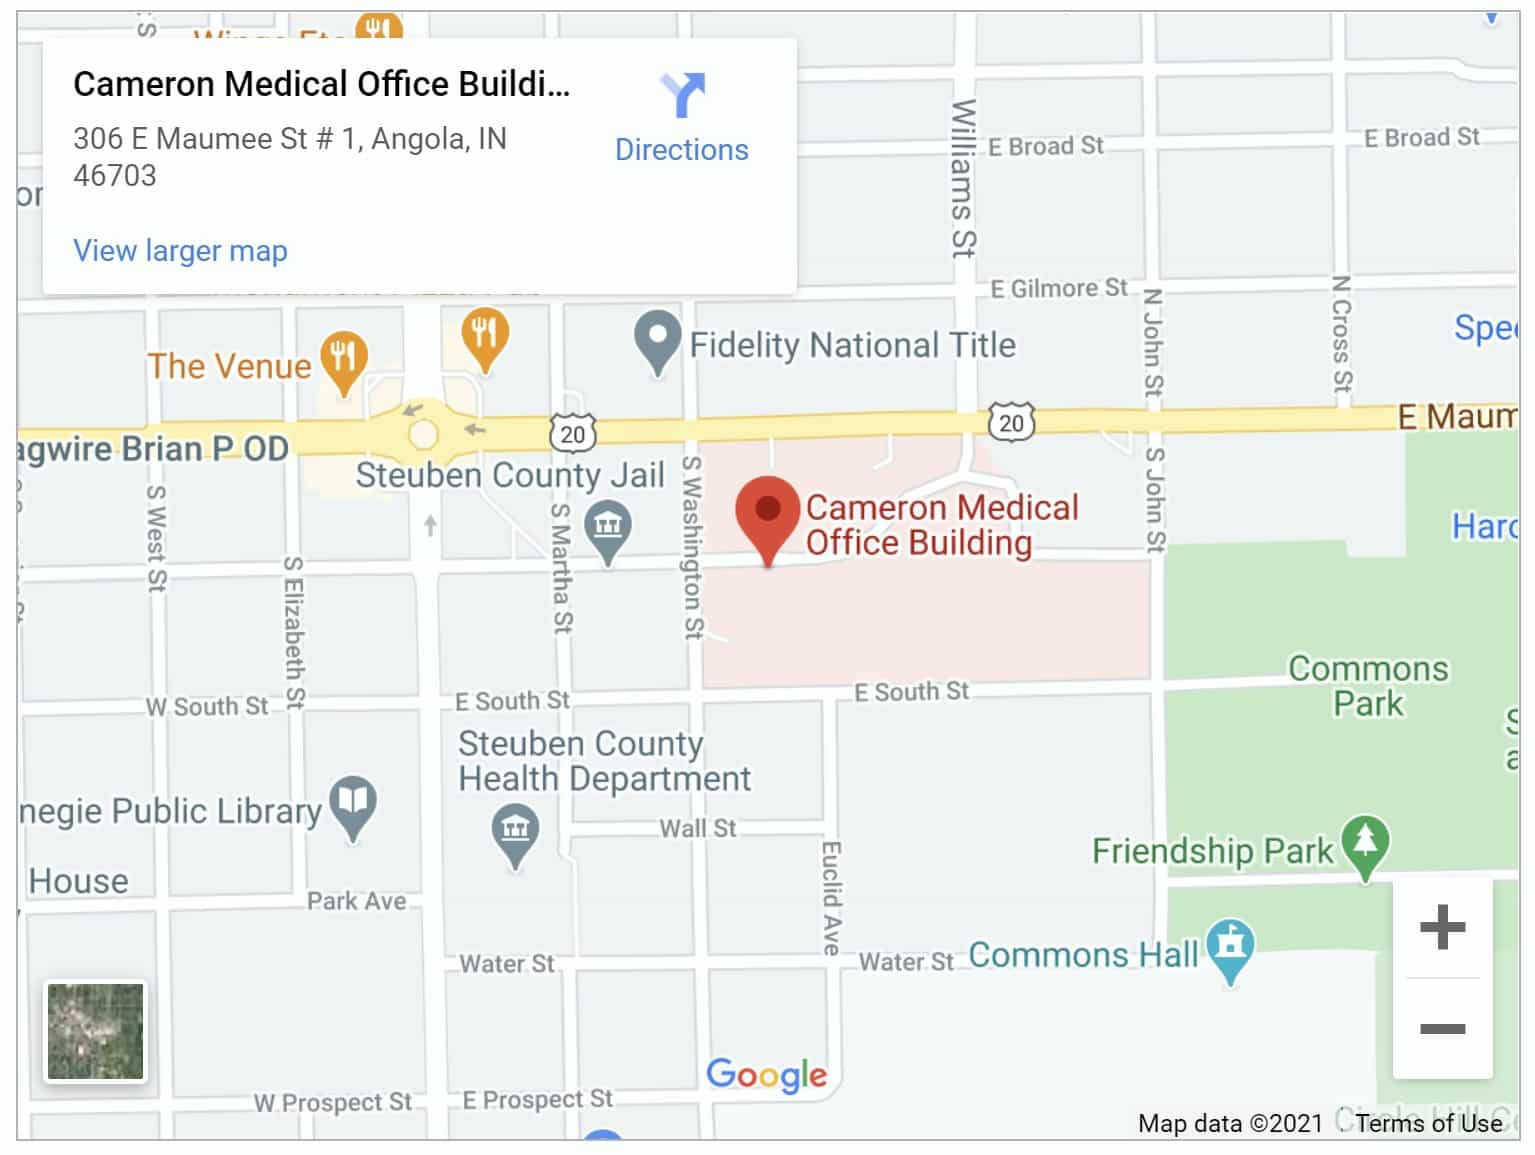 Cameron Medical Office Building map